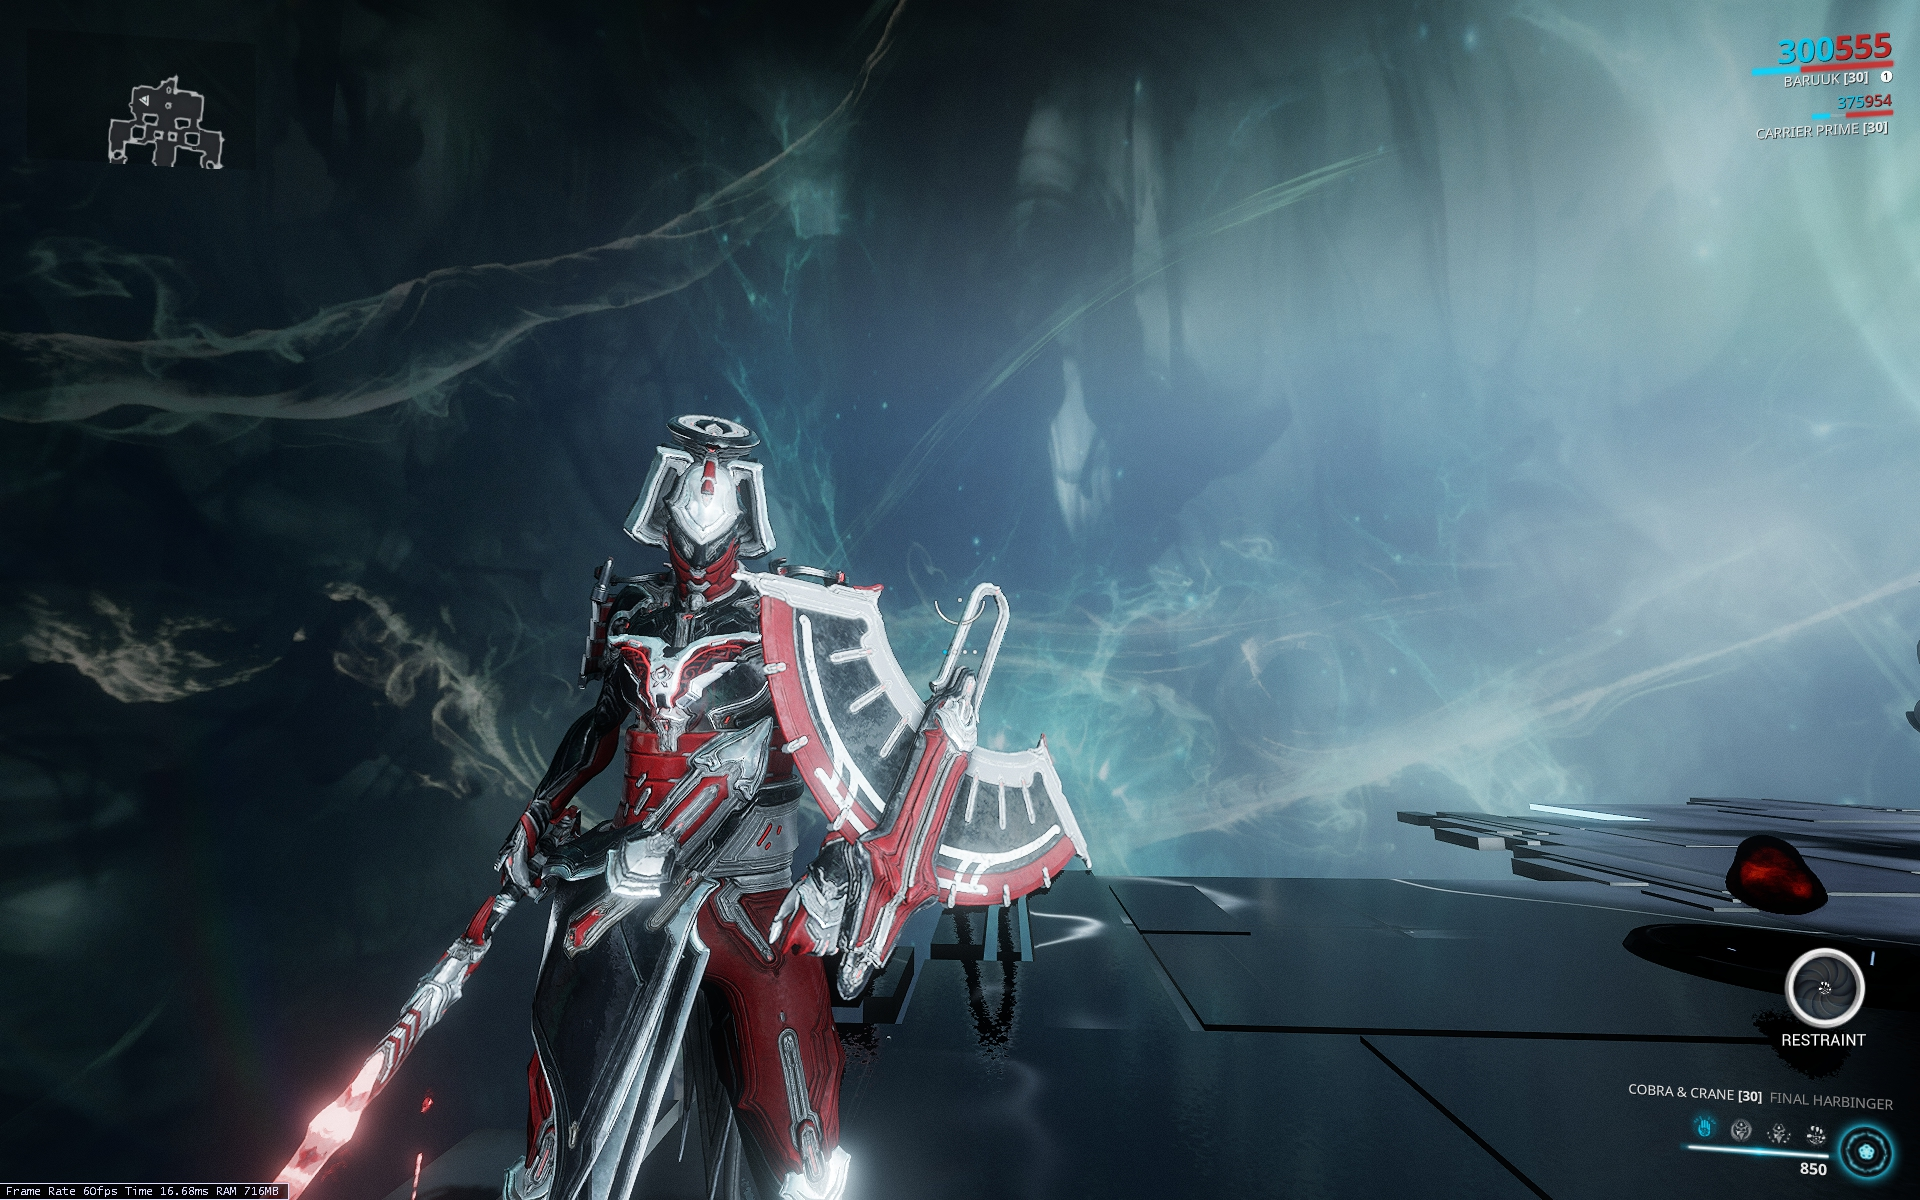 Warframe Baruuk Nomadic Gamers Warframe baruuk the king of elite sanctuary onslaught! warframe baruuk nomadic gamers